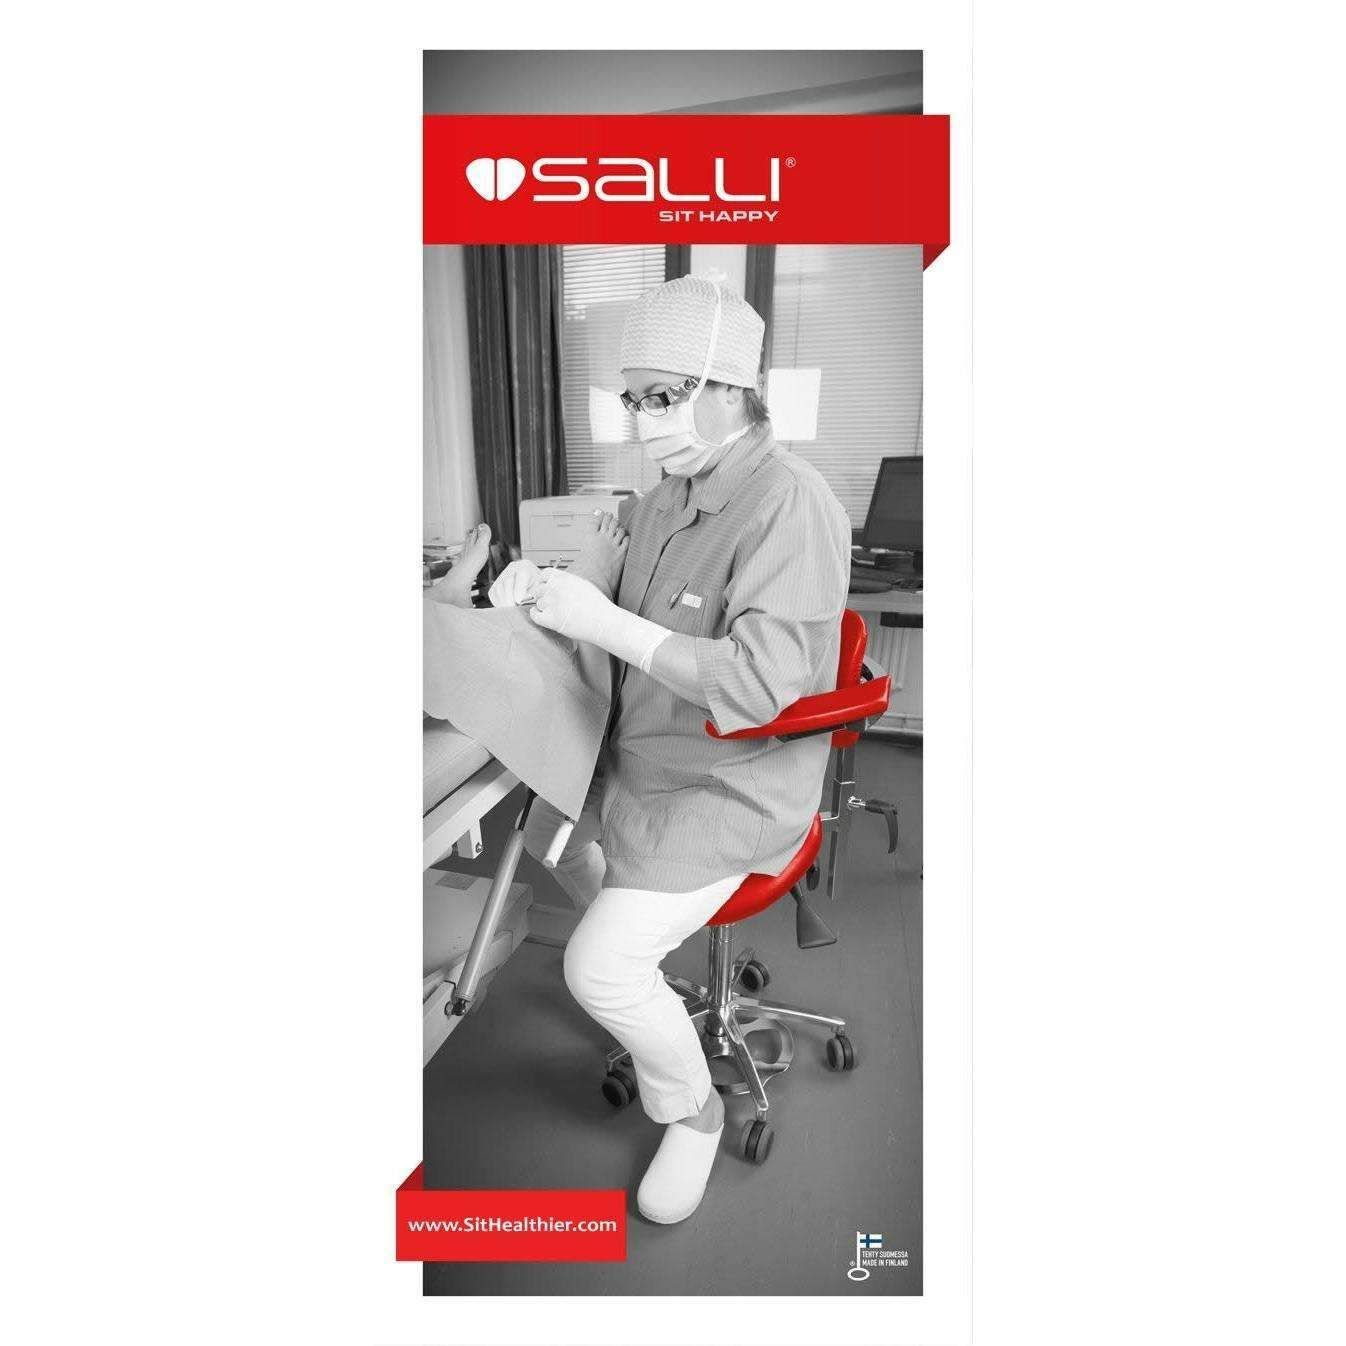 Salli Chair Salli Surgeon Or Expert Multiadjuster Medical Chair Or Stool